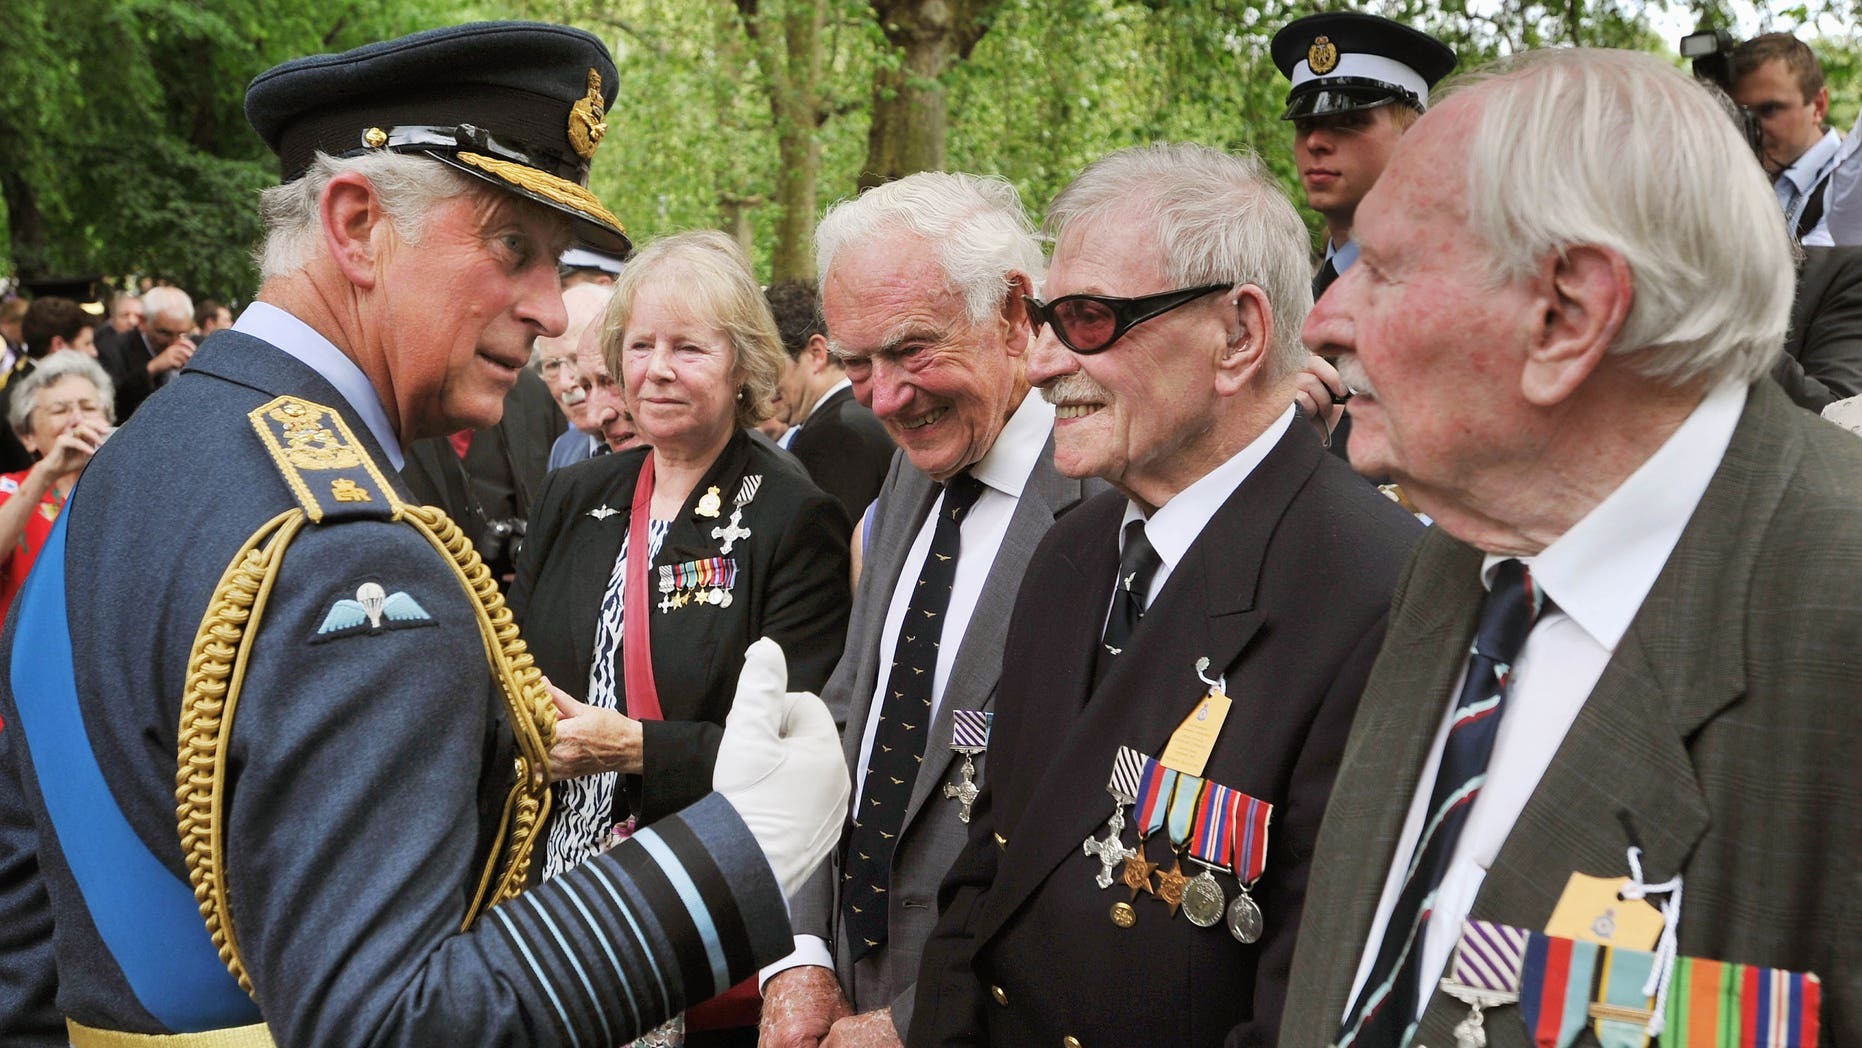 June 28, 2012: Prince Charles, left, speaks with former members of WWII RAF Bomber Command, after Queen Elizabeth II unveiled the Bomber Command Memorial in Green Park.